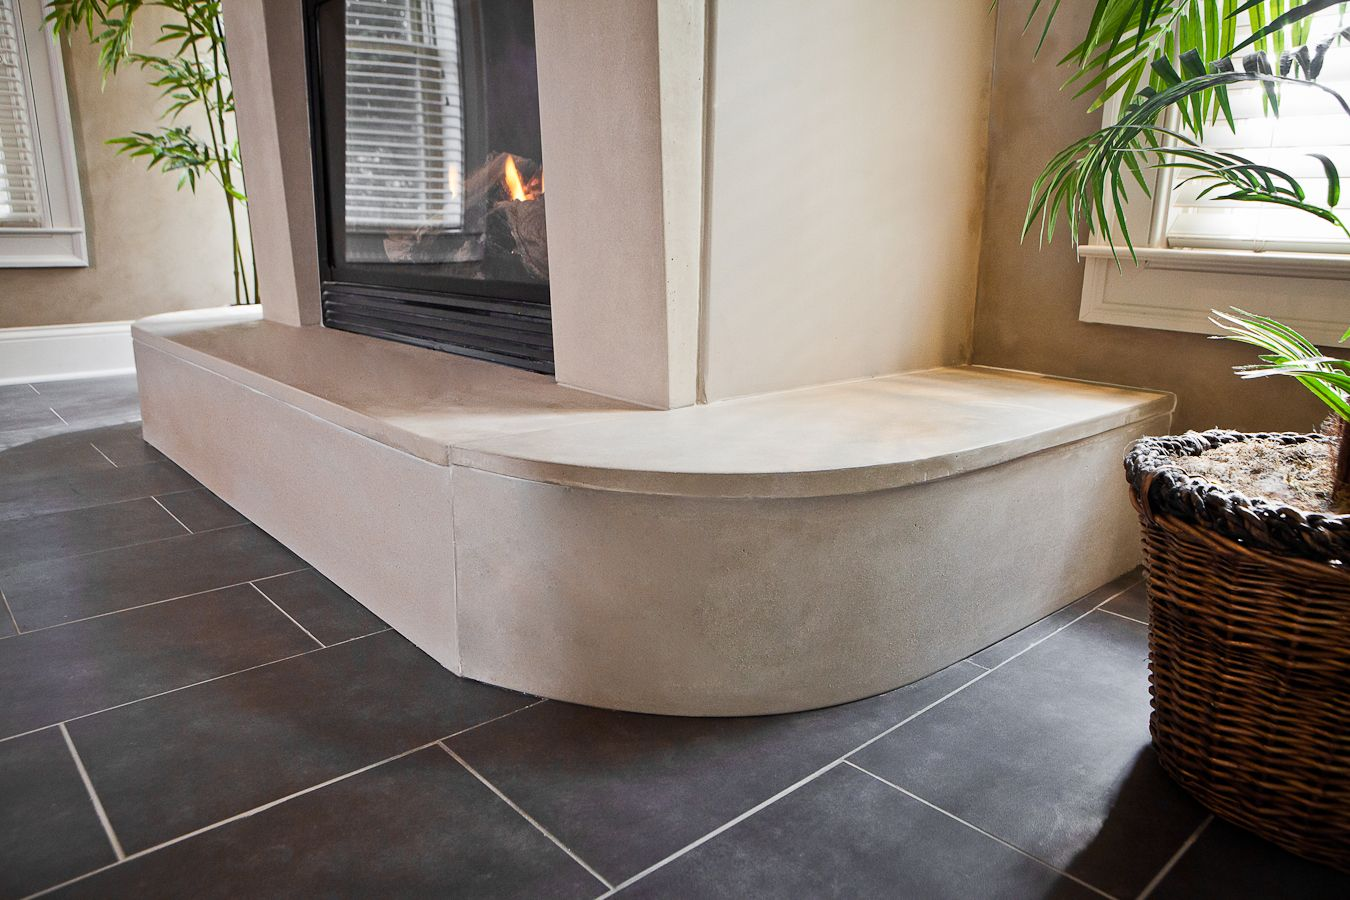 Concrete Countertops Mn Round Fireplace Surround Atlanta Concrete Countertops Concrete